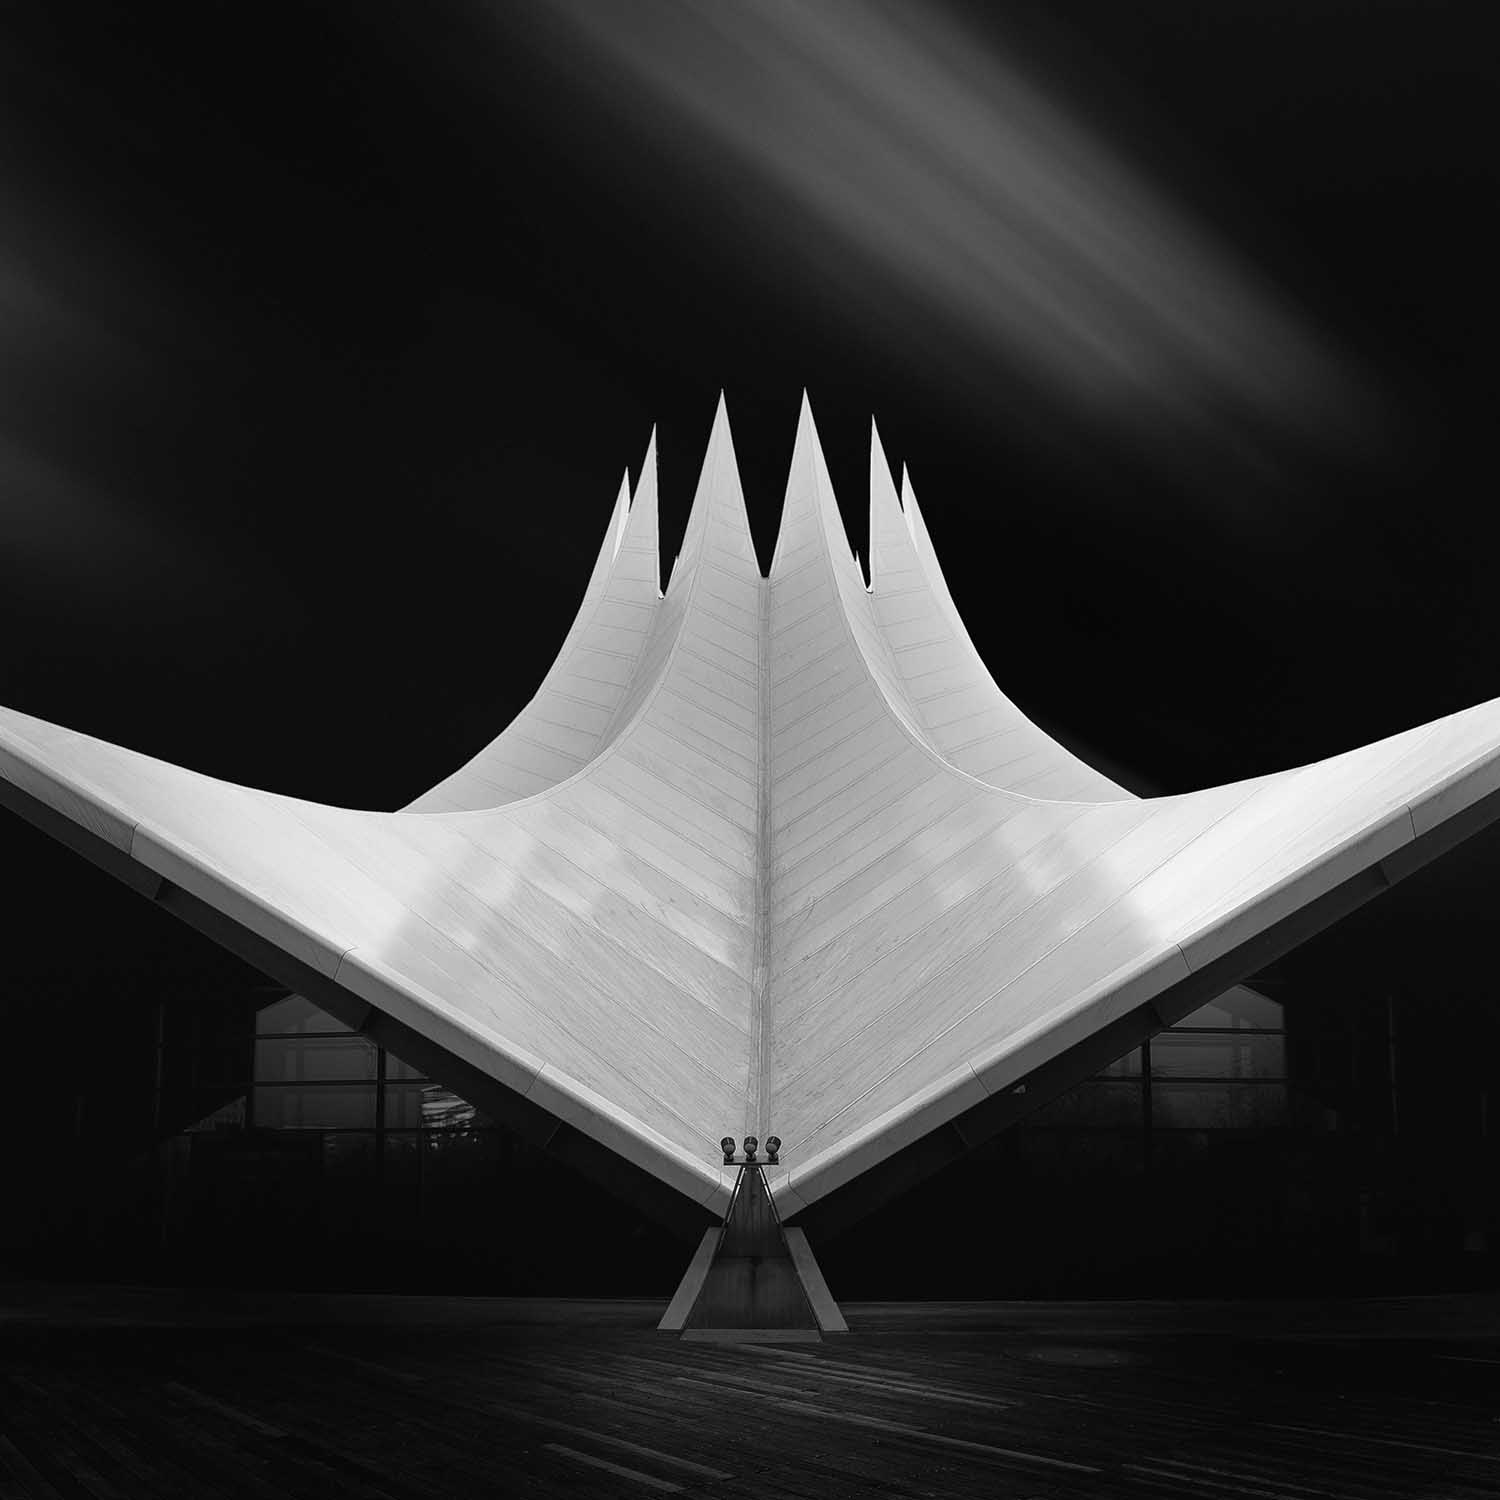 Architecture Photography Awards weekly inspiration - 17 of the best black & white photos from the